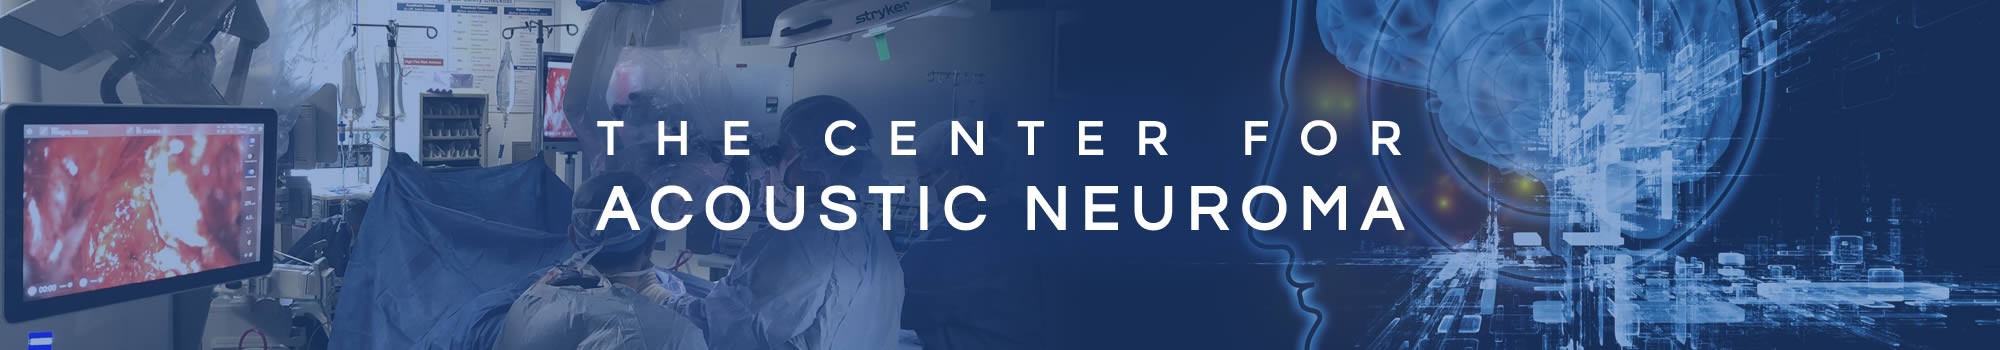 The Center for Acoustic Neuroma Dallas, Texas